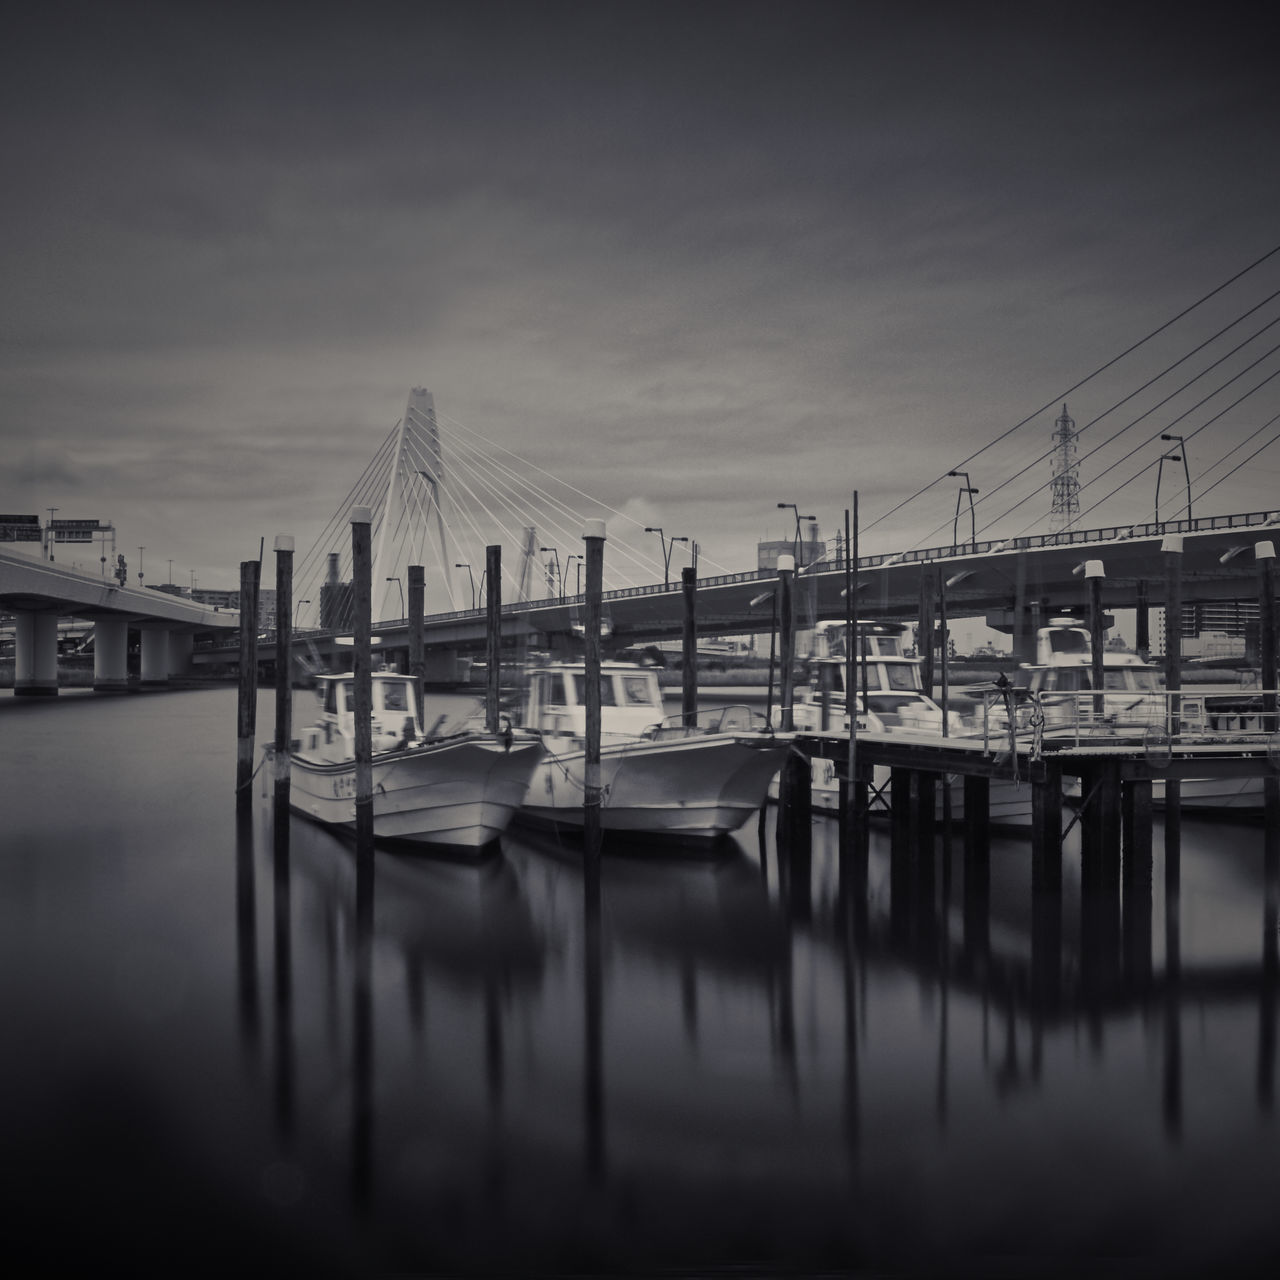 water, reflection, transportation, no people, built structure, architecture, waterfront, sky, mode of transport, nautical vessel, river, harbor, outdoors, commercial dock, building exterior, moored, day, nature, industry, shipyard